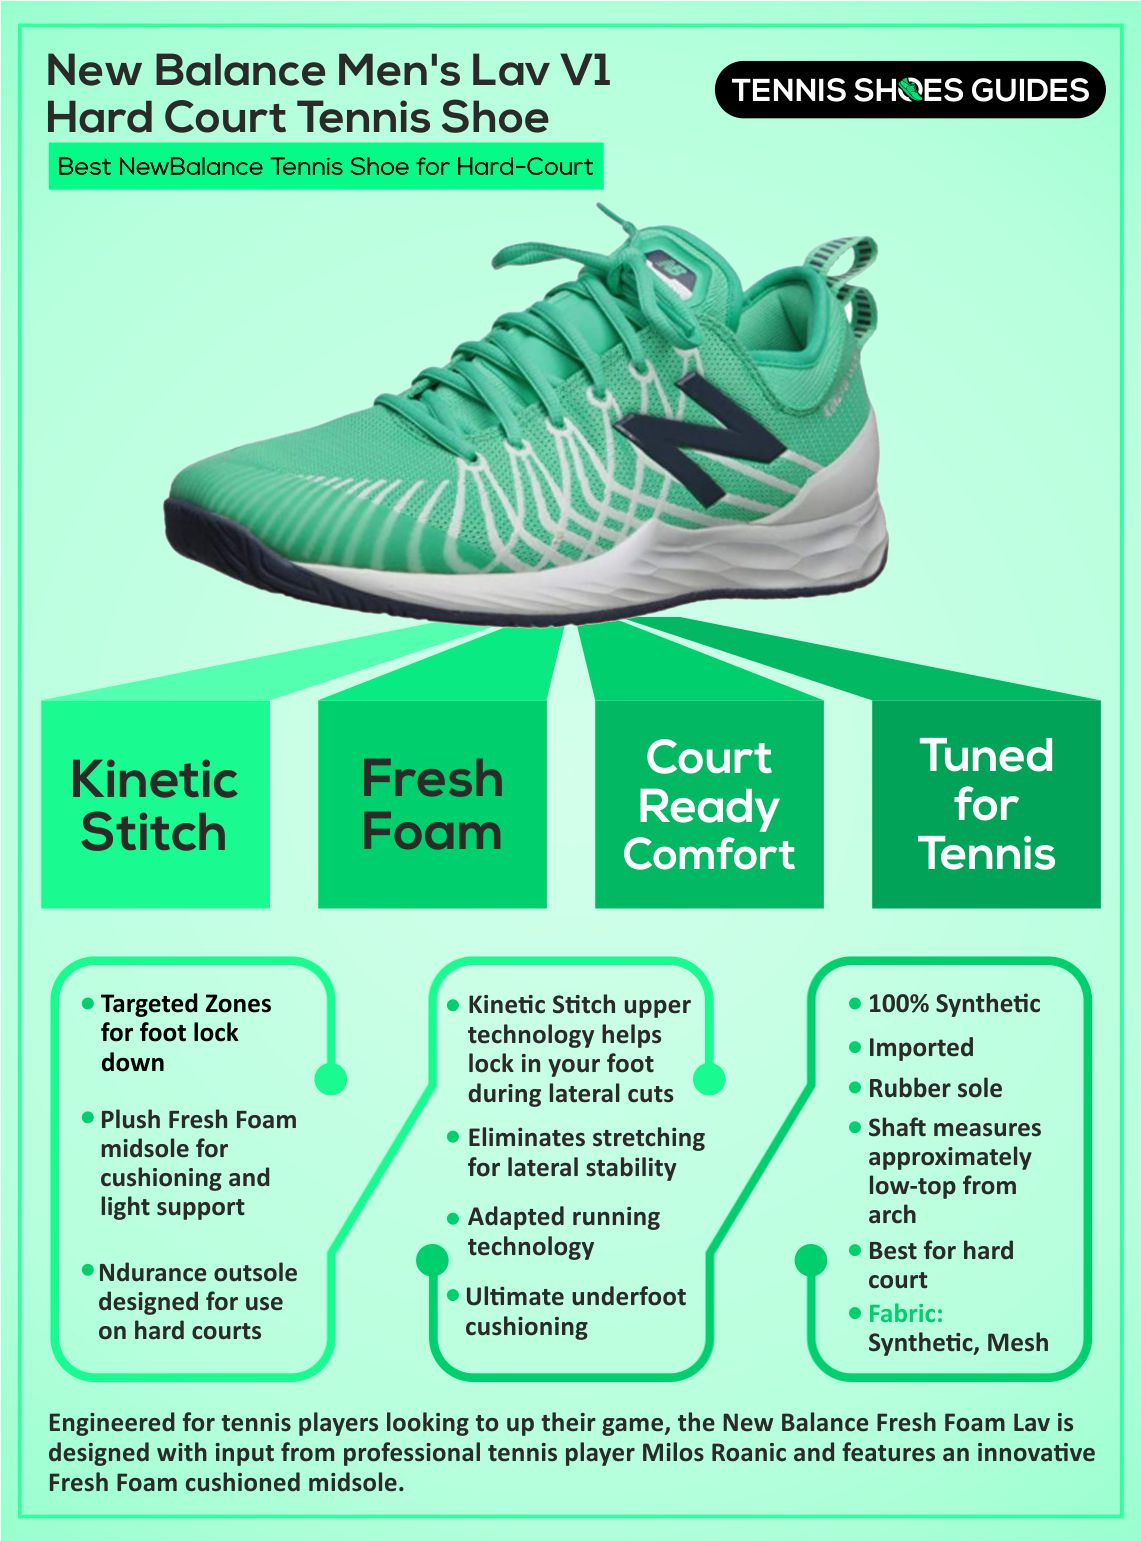 New Balance Men's Lav V1 Hard Court Tennis Shoe infographic review